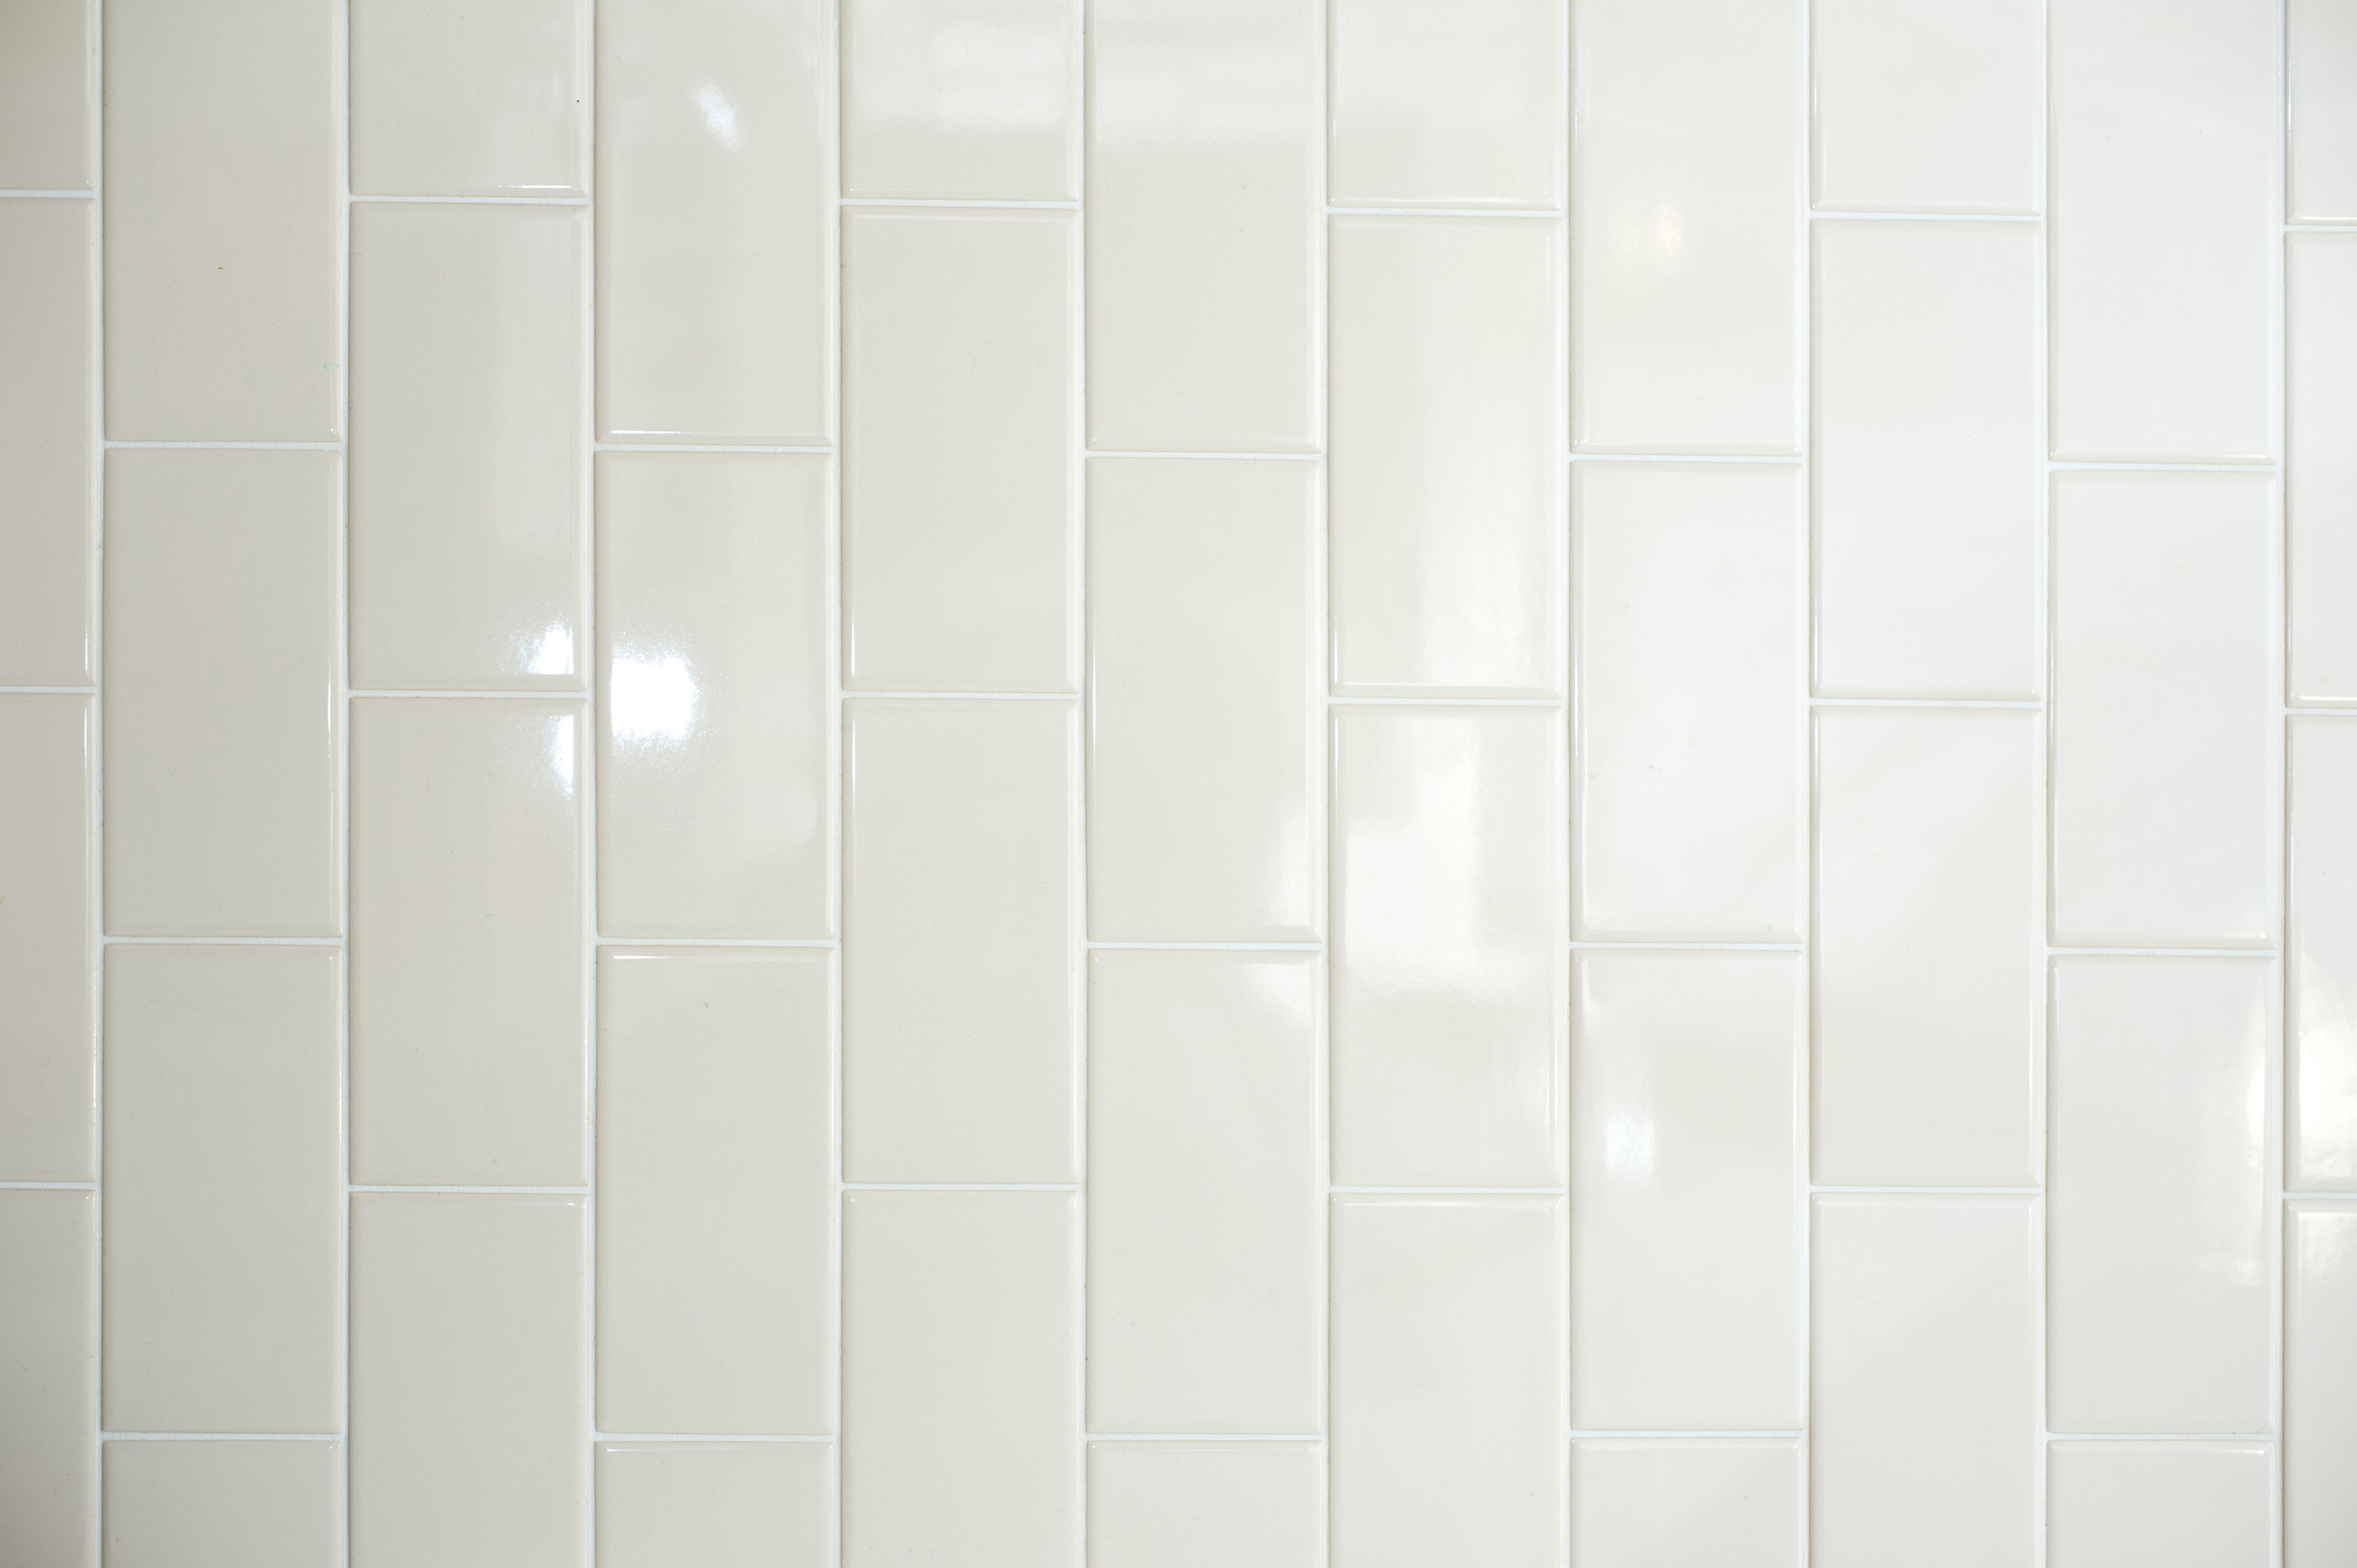 Feel Inspired By These Bathroom Tile Trends For 2019 14 Bathroom Tile Trends Feel Inspired By These Bathroom Tile Trends For 2019 Feel Inspired By These Bathroom Tile Trends For 2019 13